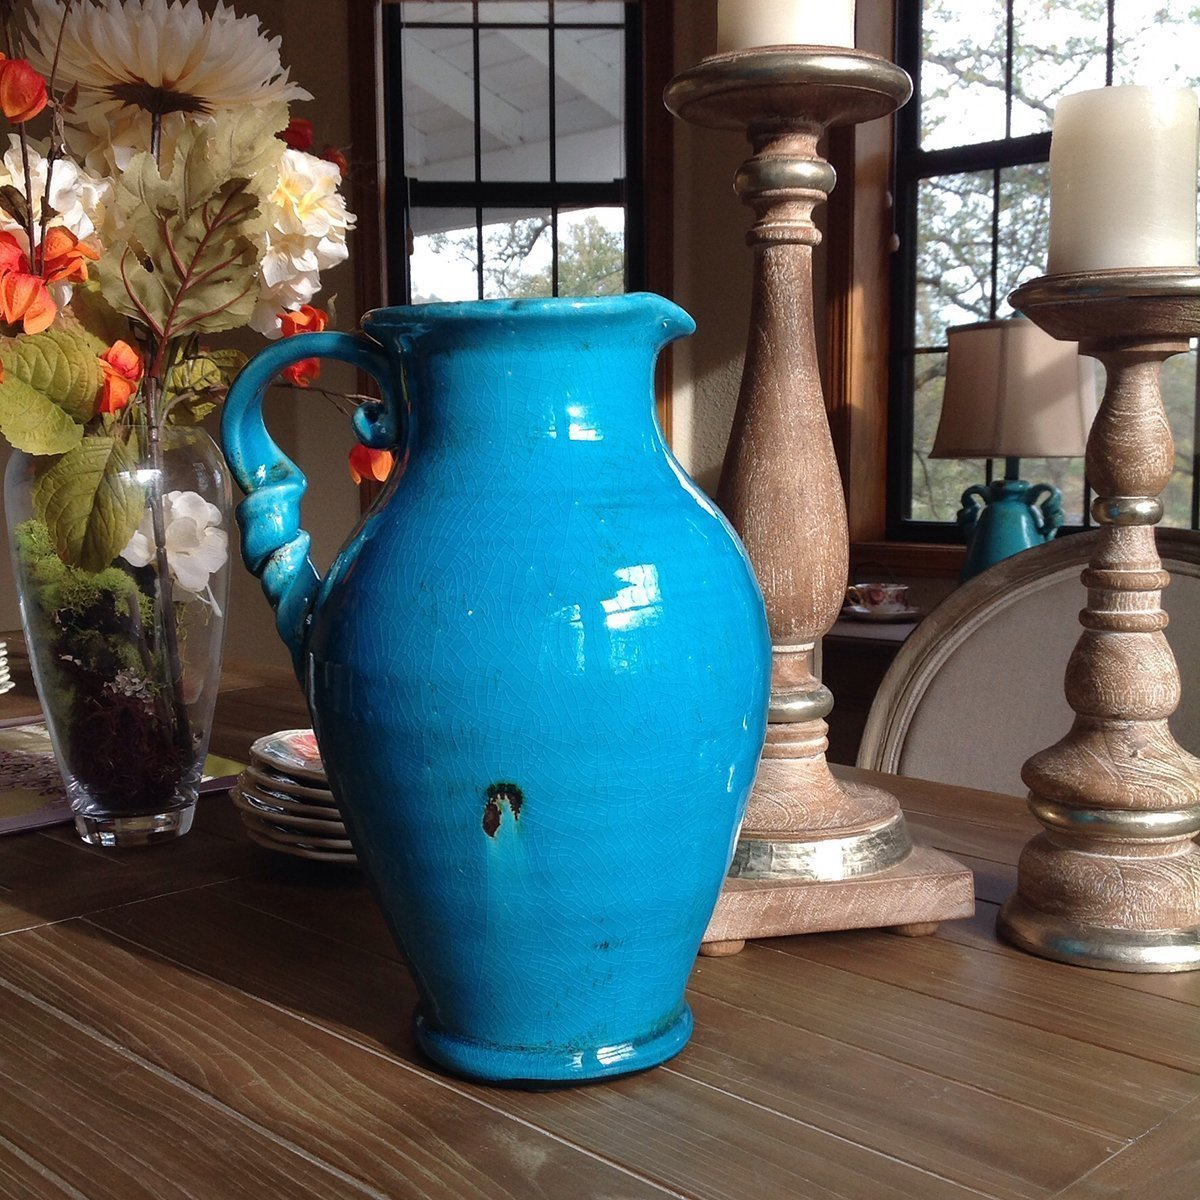 Vintage Old World Hand Thrown Water Jug with Twisted Handle